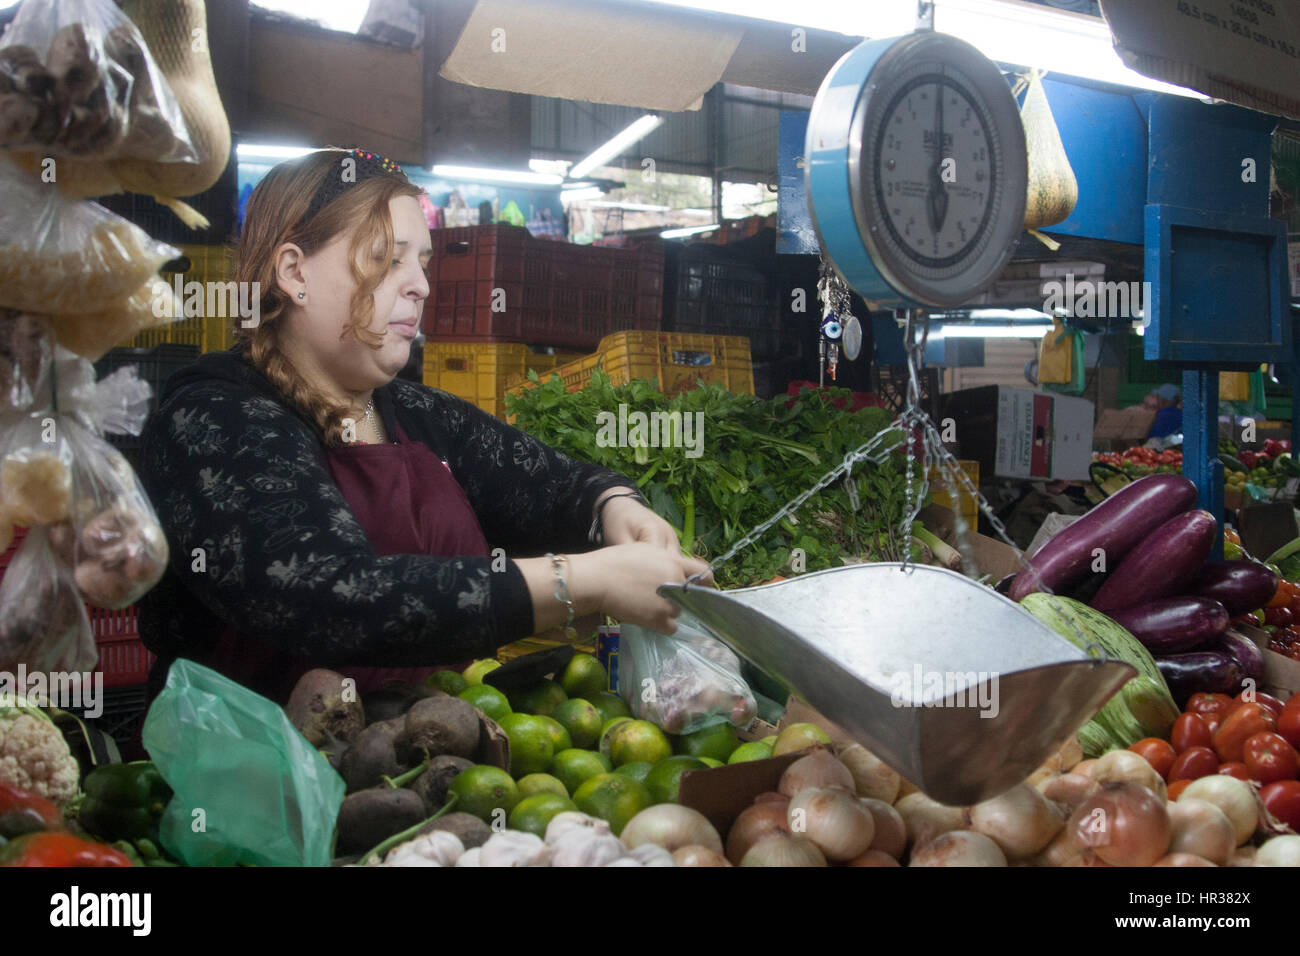 Caracas, Dtto Capital / Venezuela - 04-02-2012 : Woman selling some fruits and vegetables in a famous popular market - Stock Image